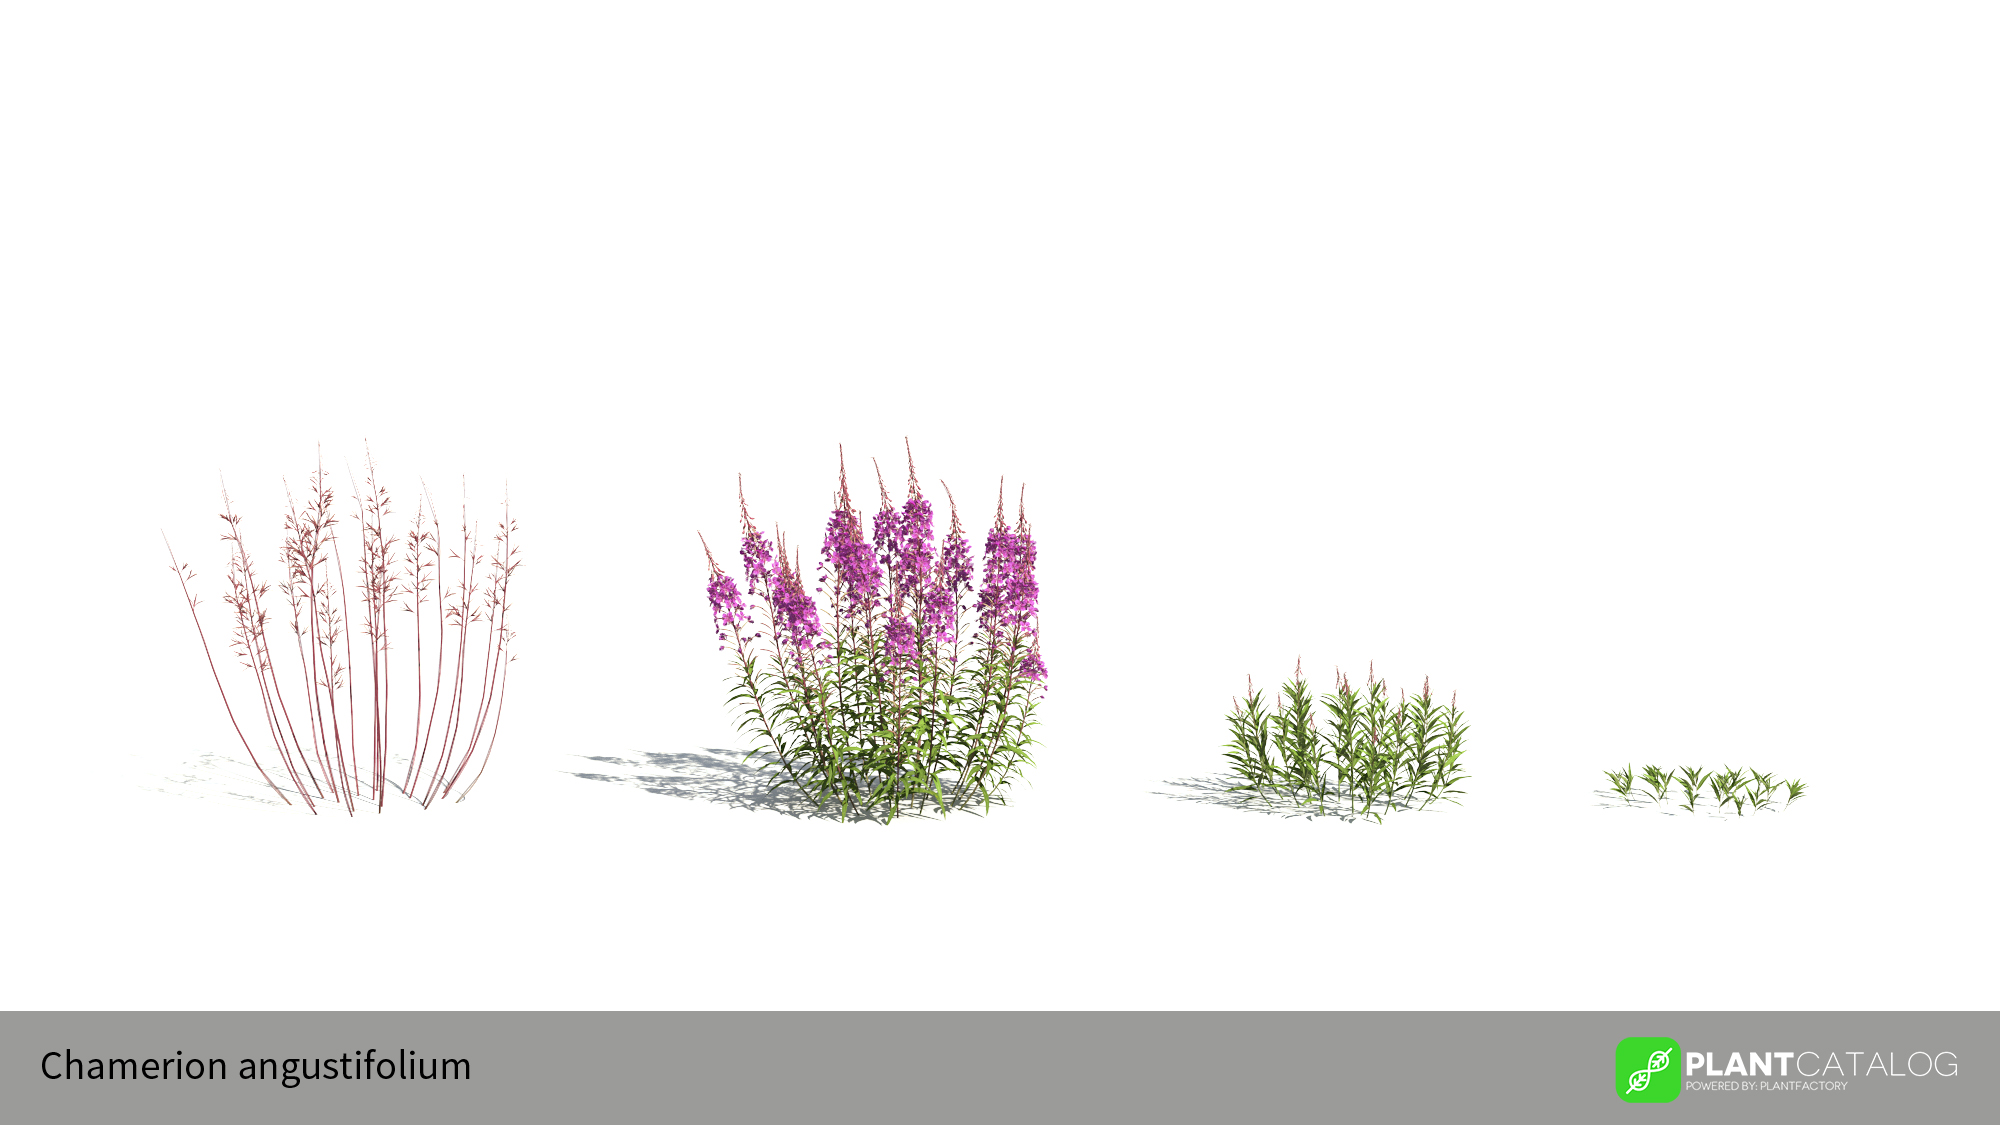 3D model of the Fireweed - Chamerion angustifolium - from the PlantCatalog, rendered in VUE